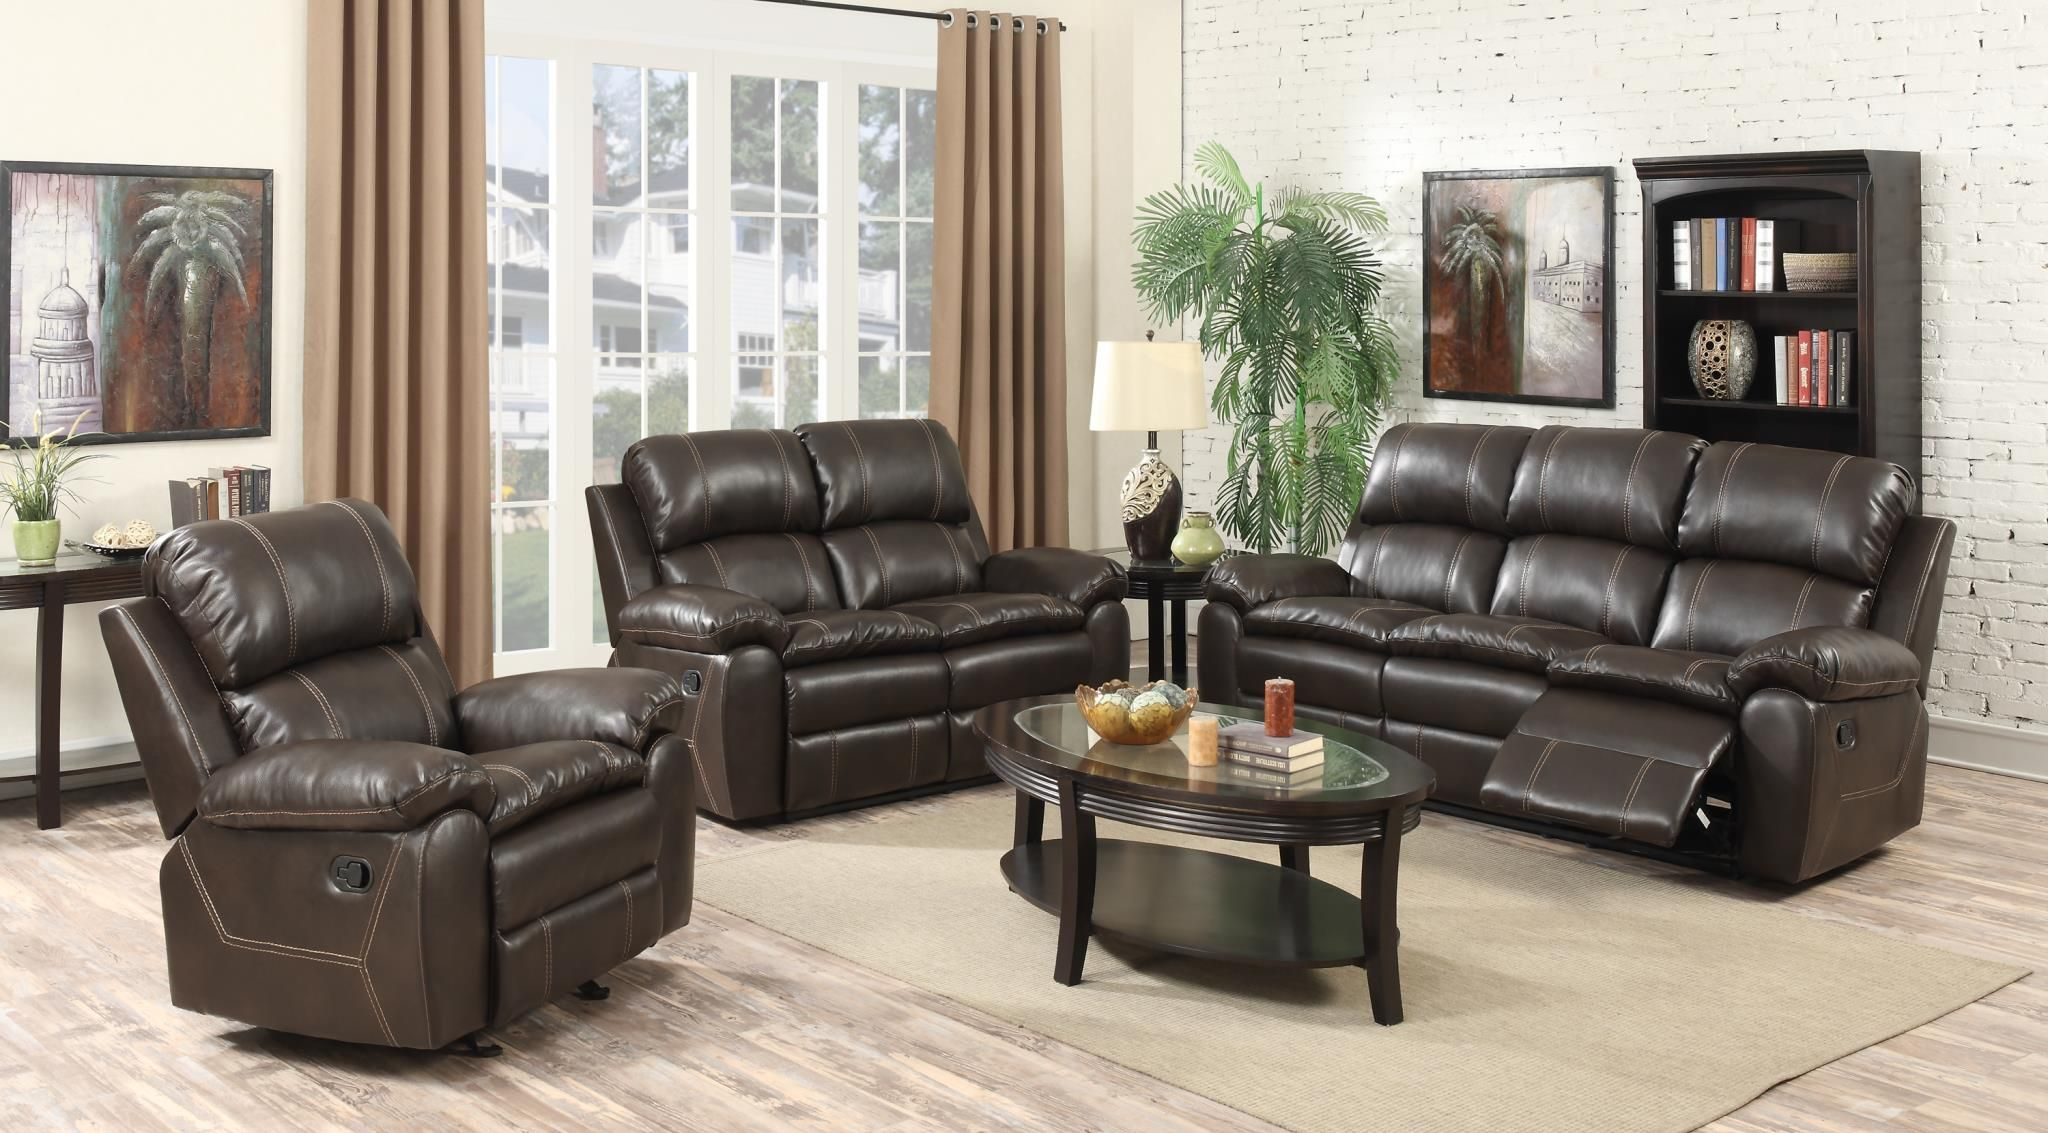 K Living Burlington Reclining Sofa Set If You Are Looking For